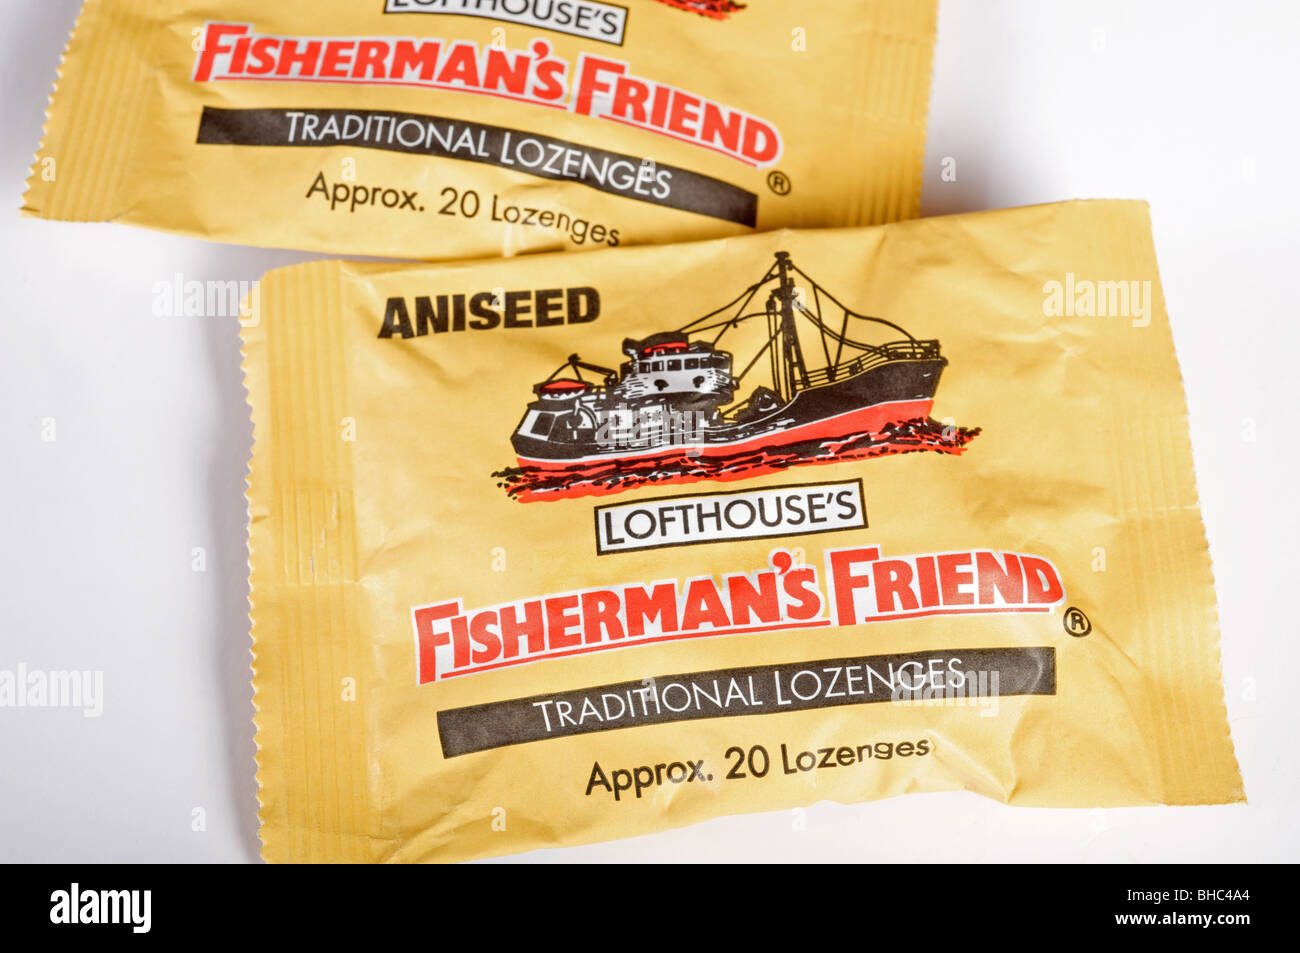 Packets of Lofthouse's Fisherman's Friend lozenges - Stock Image